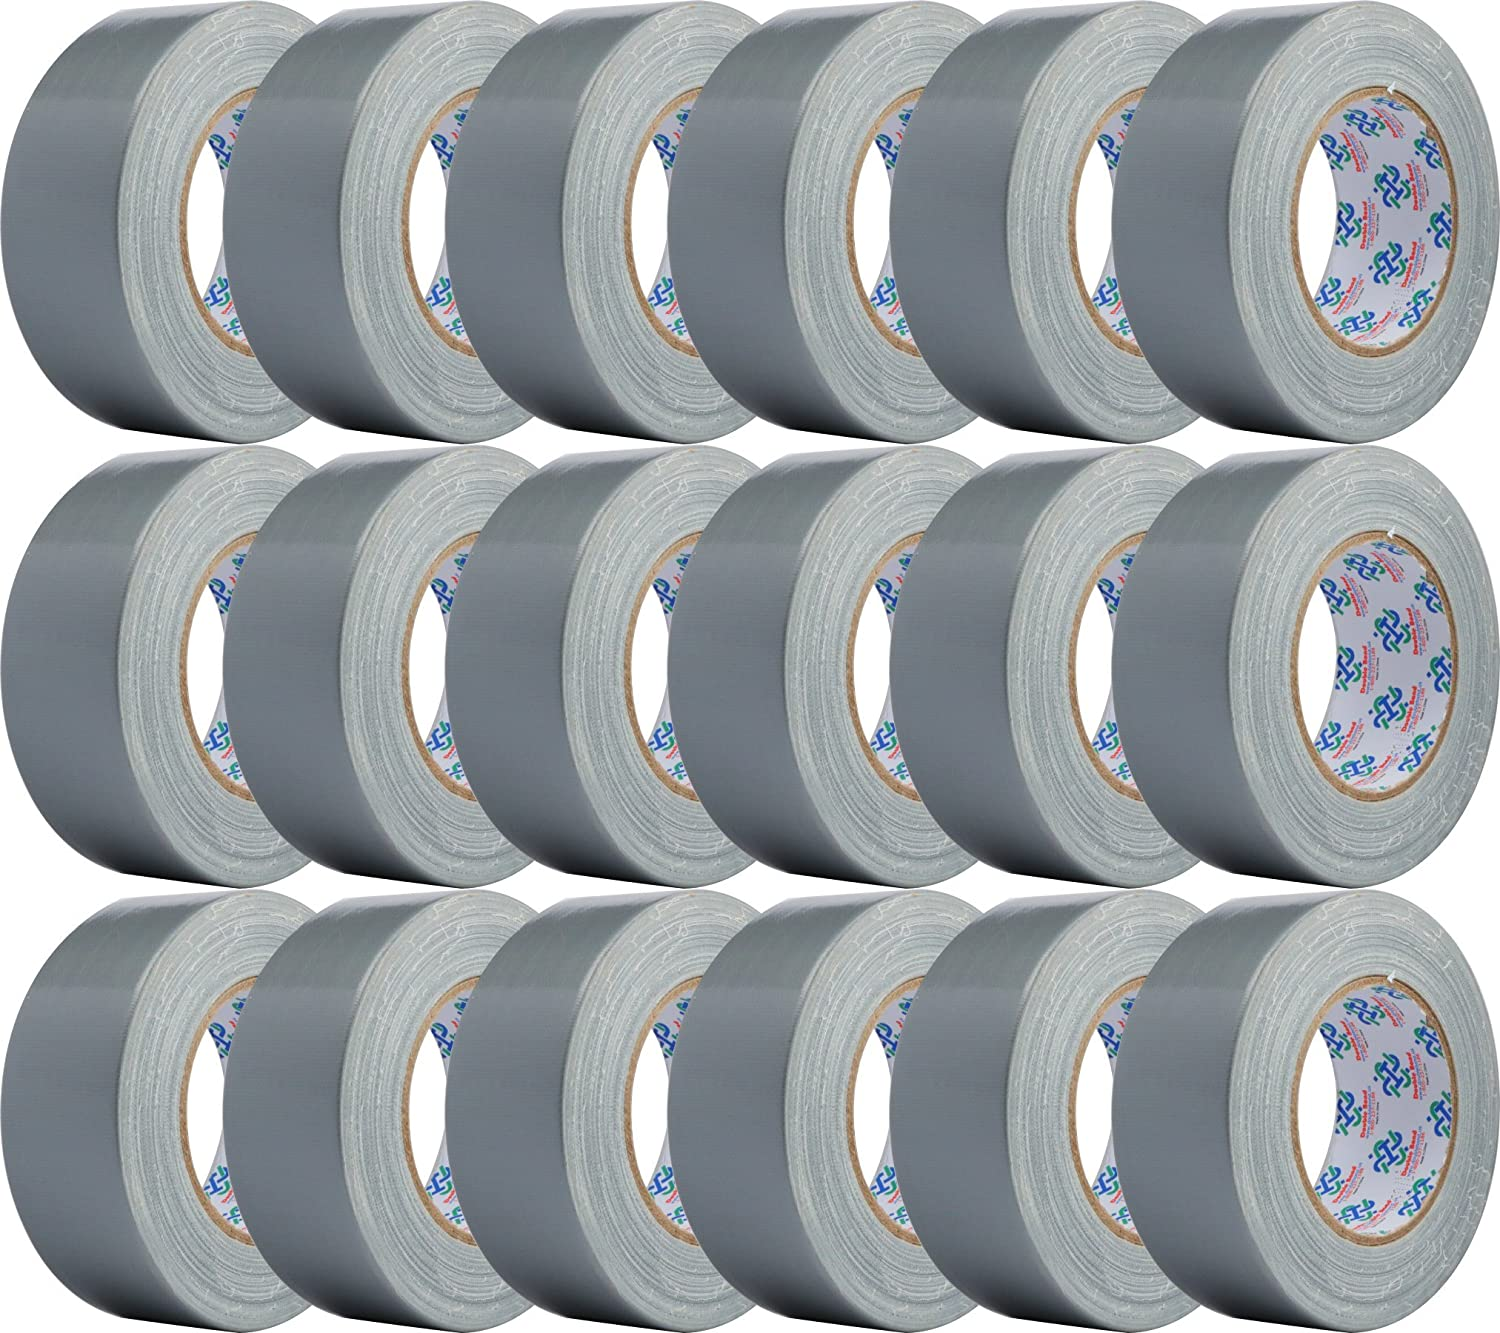 Double Bond Professional Grade Duct Tape 1118, Silver, 48mm x 32m (1.88 Inch x 35 Yards), 11mil Thick (Case of 18 Rolls)